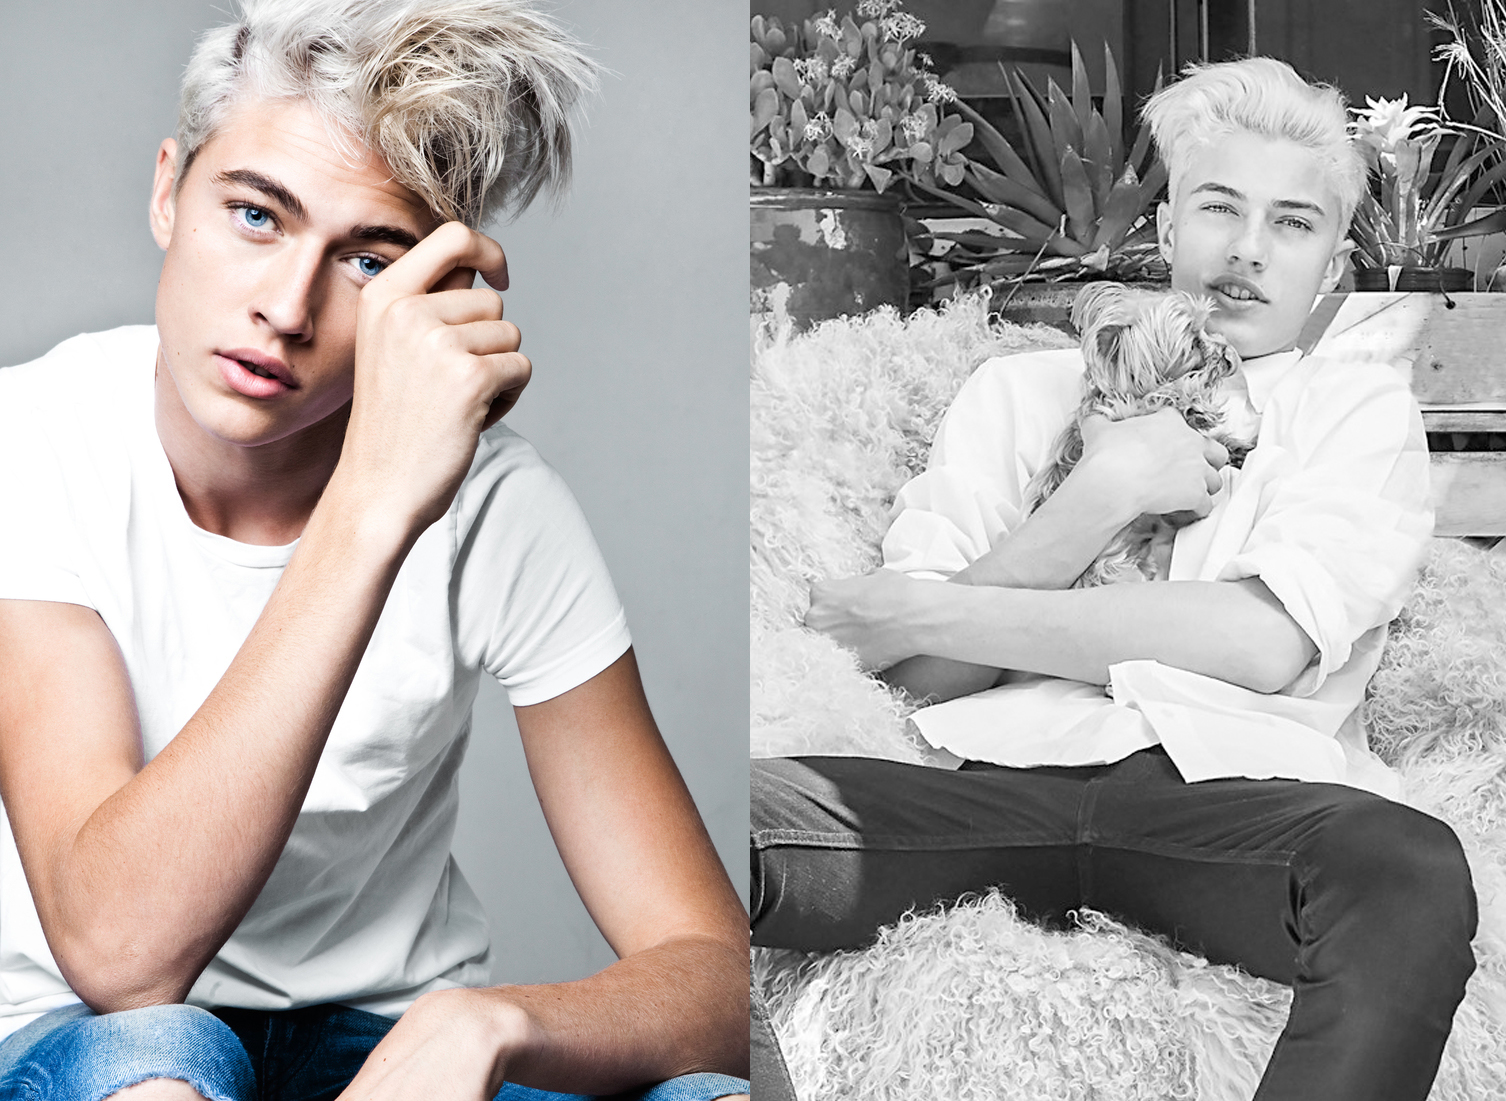 Las fotos más hot de Lucky Blue Smith, ¡el chico de moda!